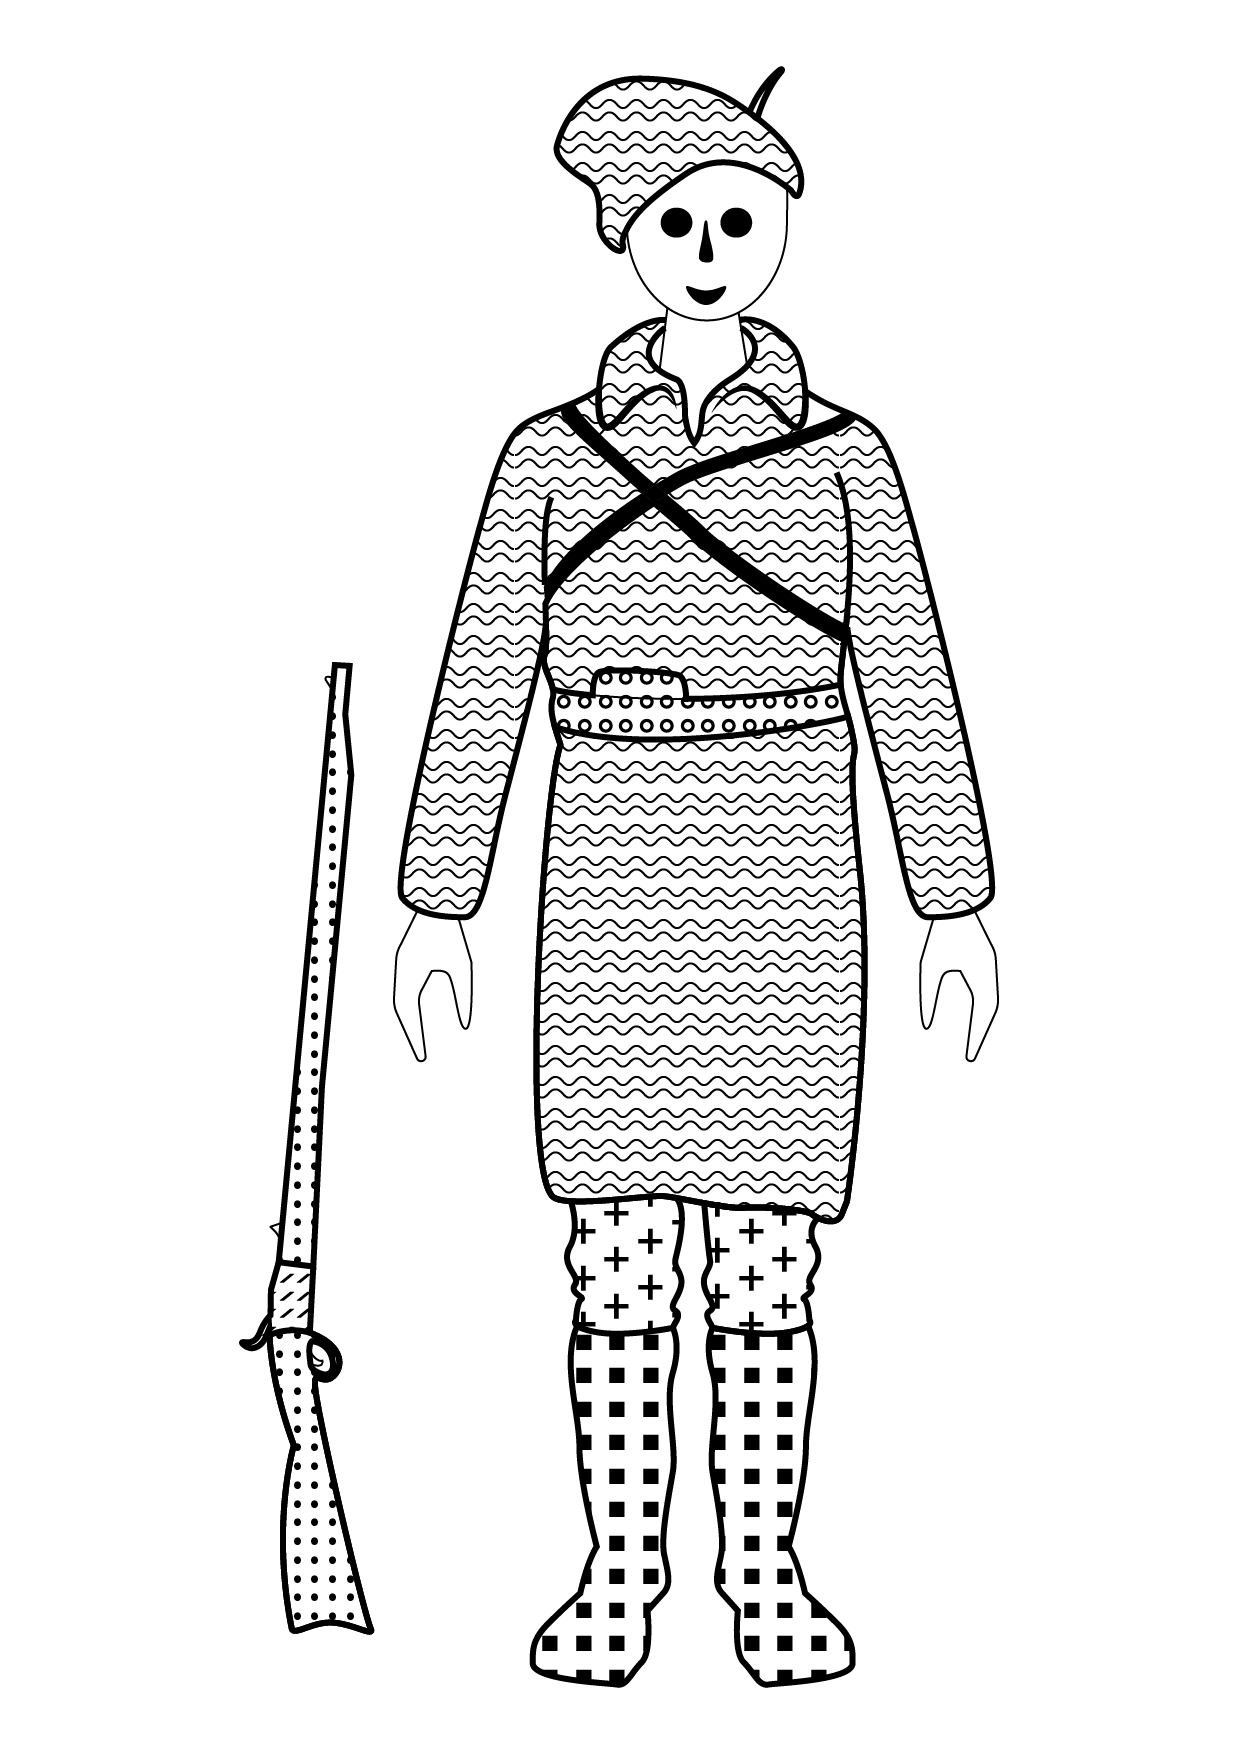 romanian army's uniform in the independence war